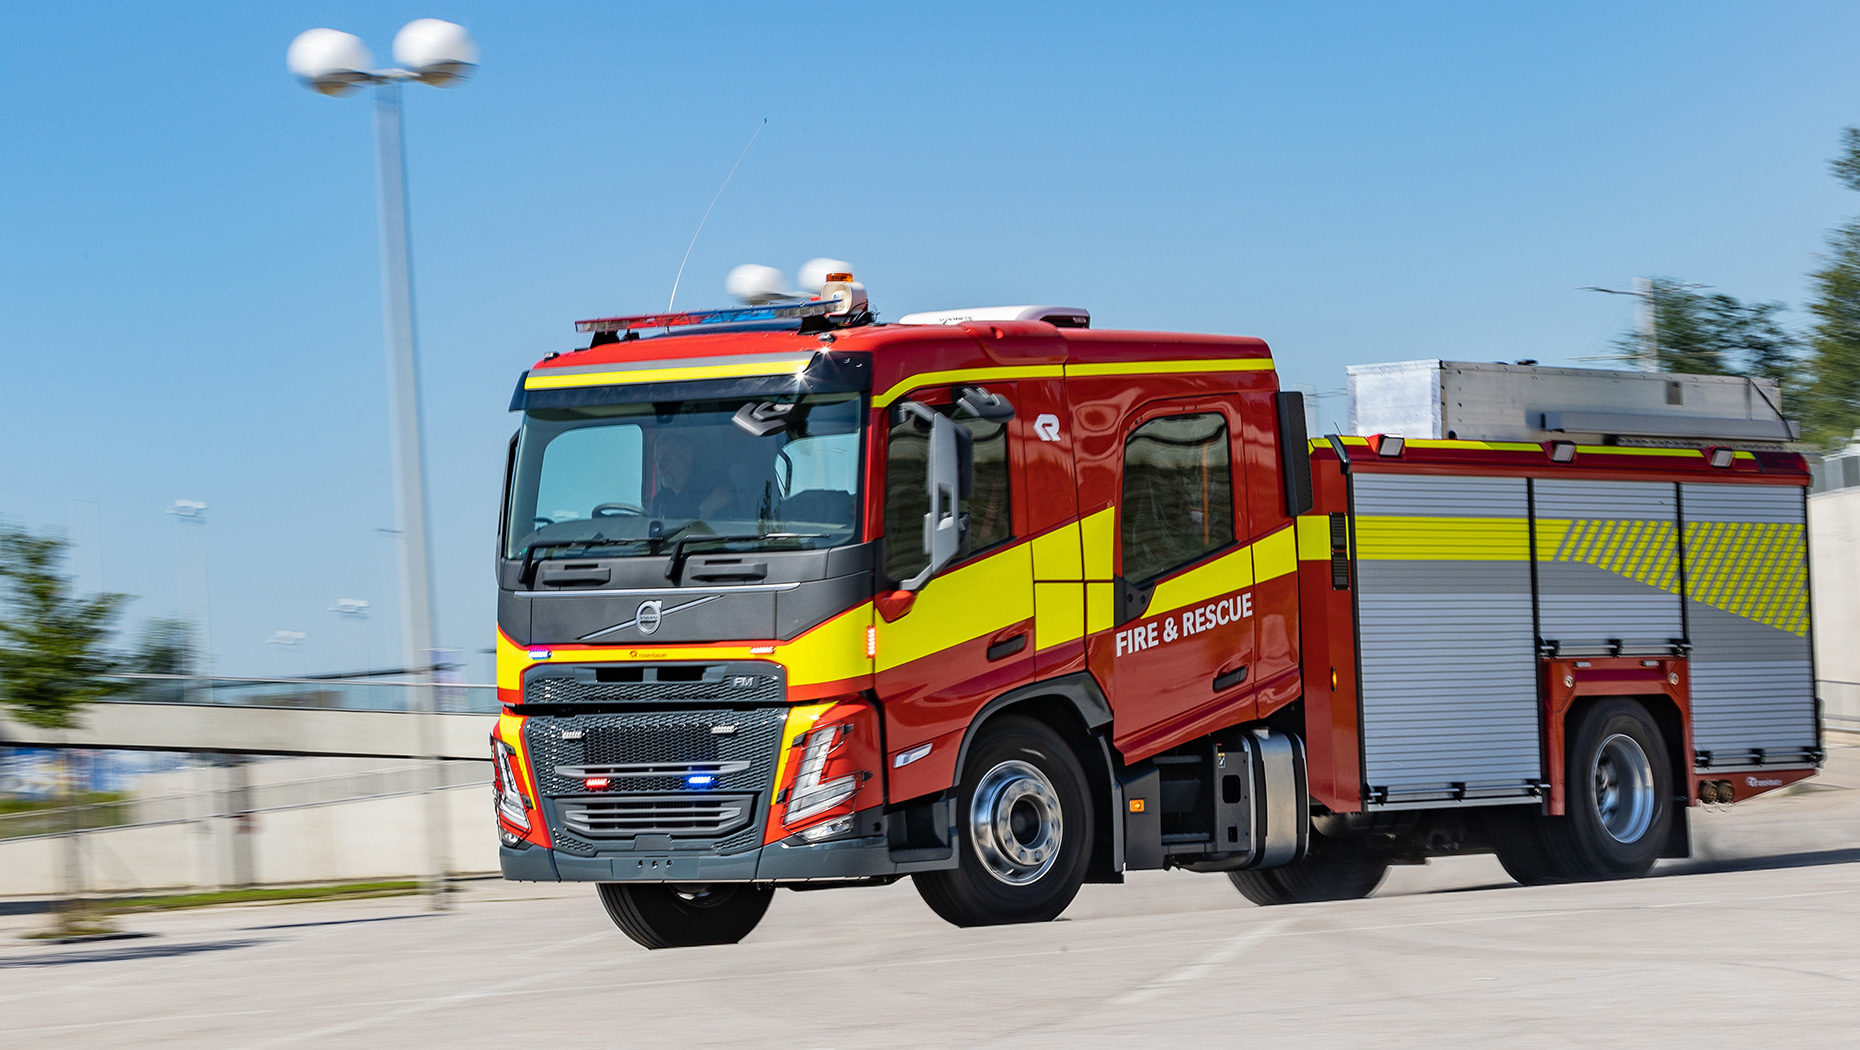 Volvo Trucks' new crew cab is designed for the global market in collaboration with companies such as Rosenbauer, one of the world's leading bodybuilders for emergency vehicles. This is a prototype of the Volvo FM with Rosenbauer's ET body for the Australian fire service.